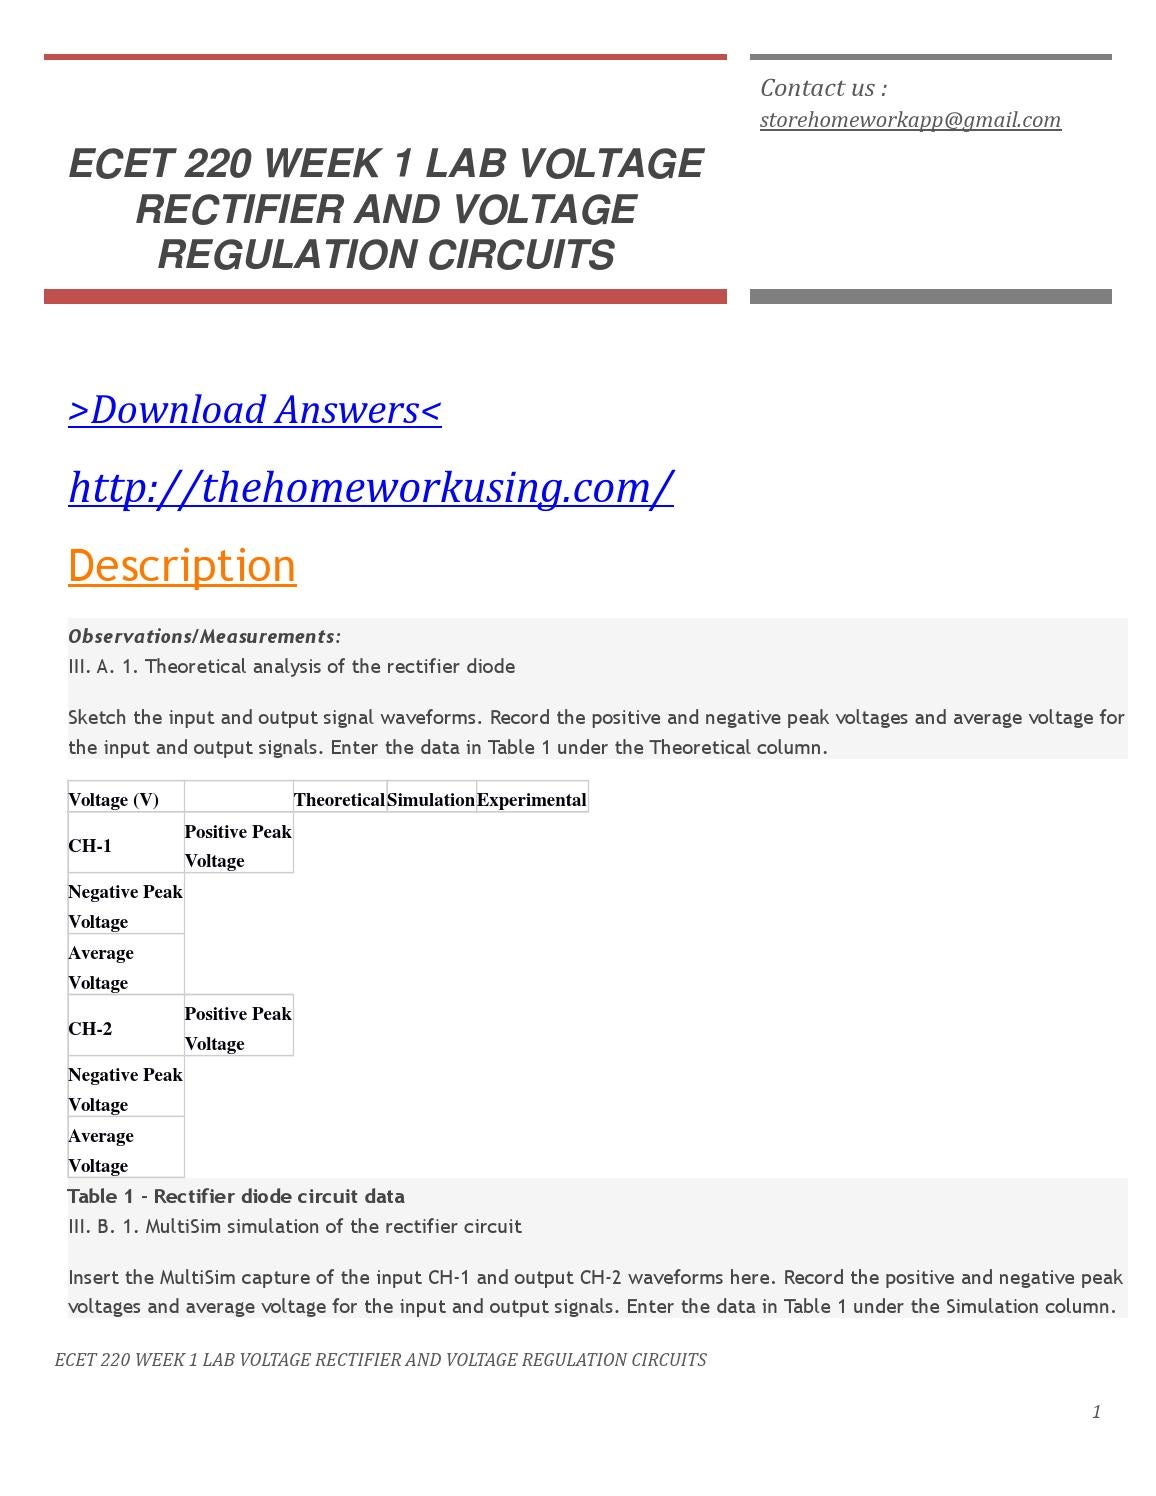 Ecet 220 Week 1 Lab Voltage Rectifier And Regulation Circuit Circuits By Edward Online Issuu